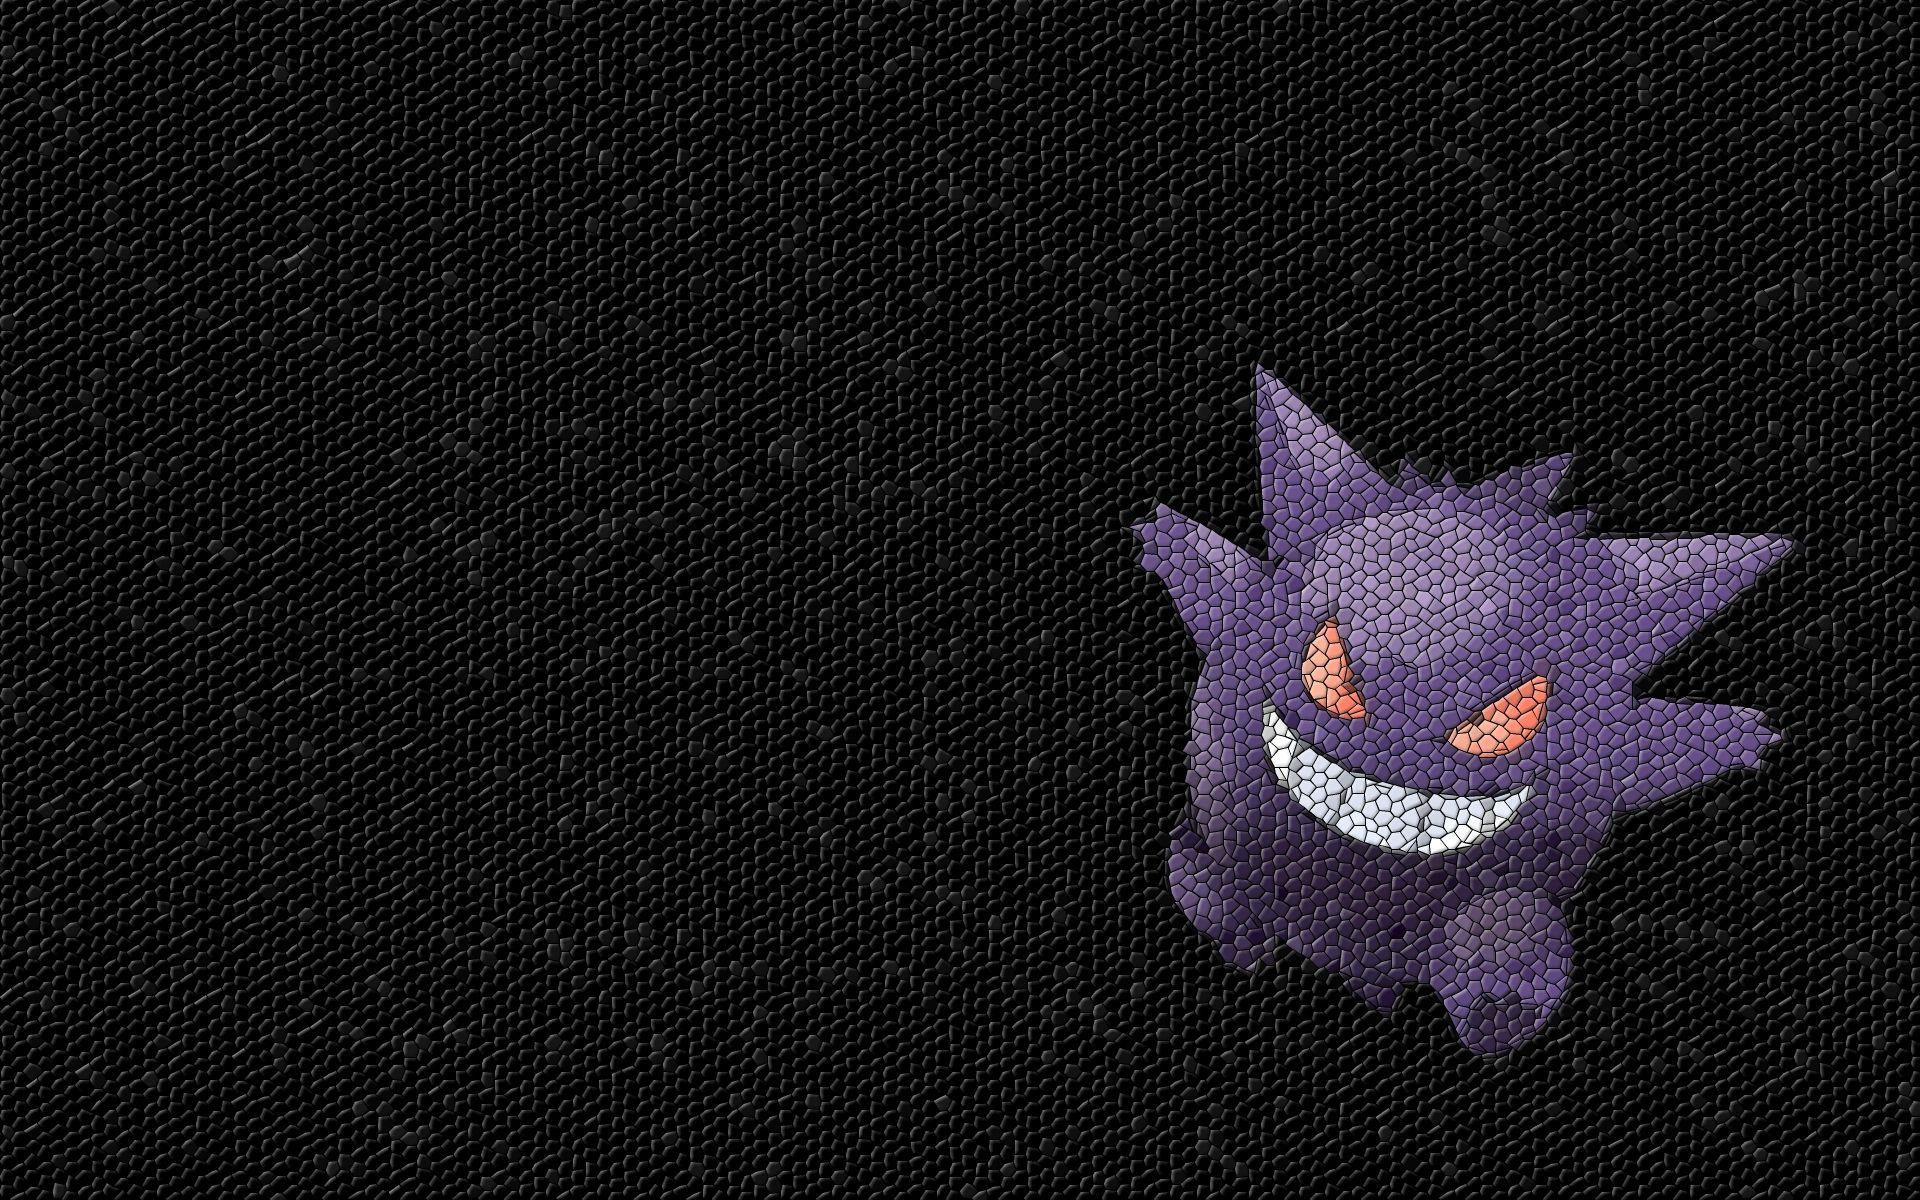 pokemon gengar mosaic 1920x1200 wallpaper High Quality Wallpapers ...